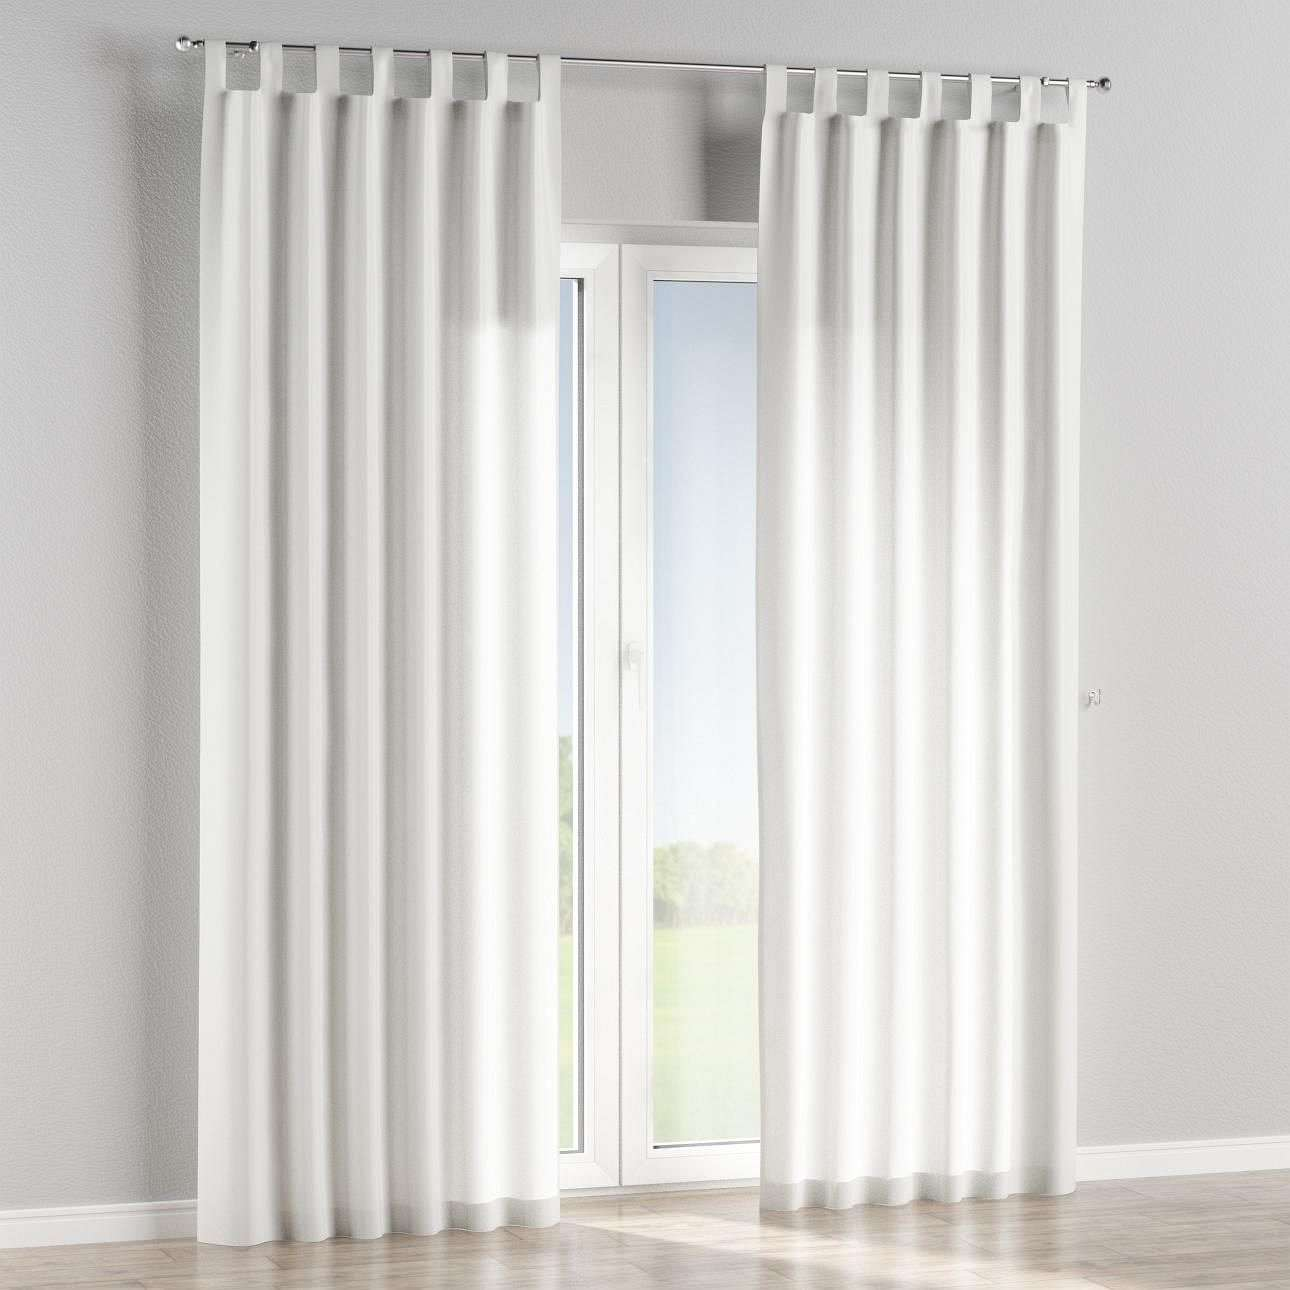 Tab top curtains in collection Bristol, fabric: 125-15